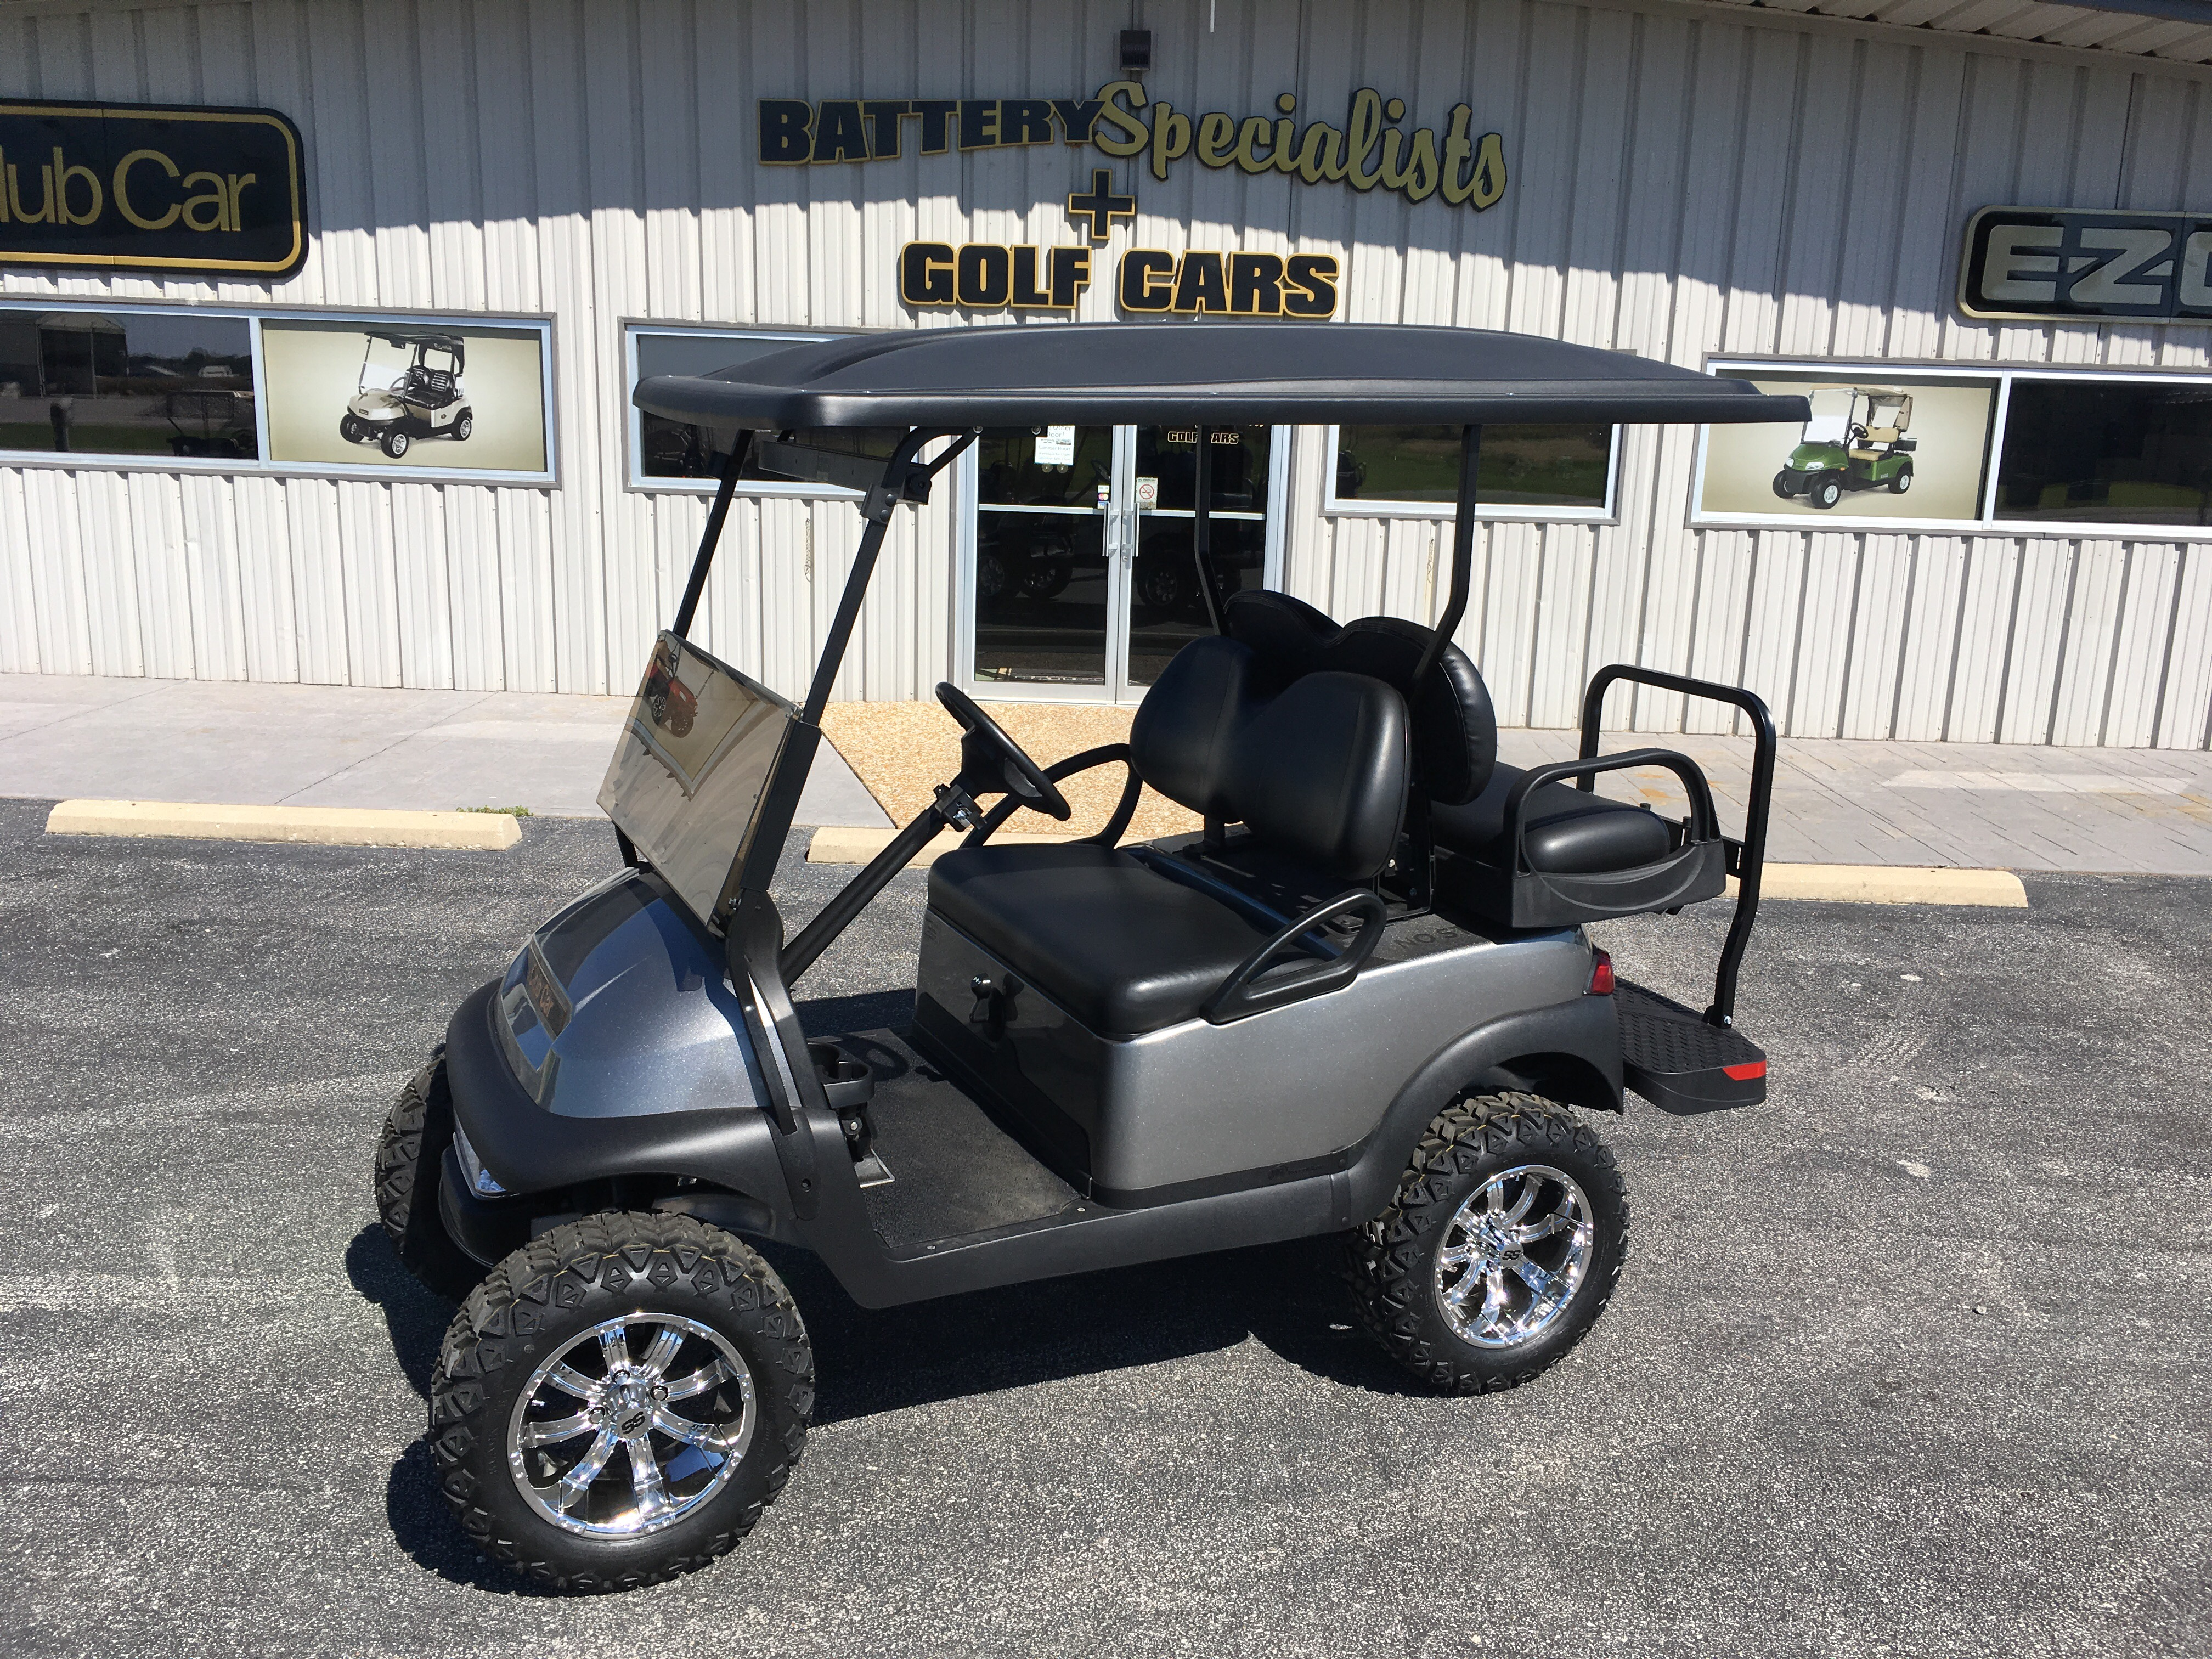 2015 Platinum Club Car Precedent Gas Golf Car $7995